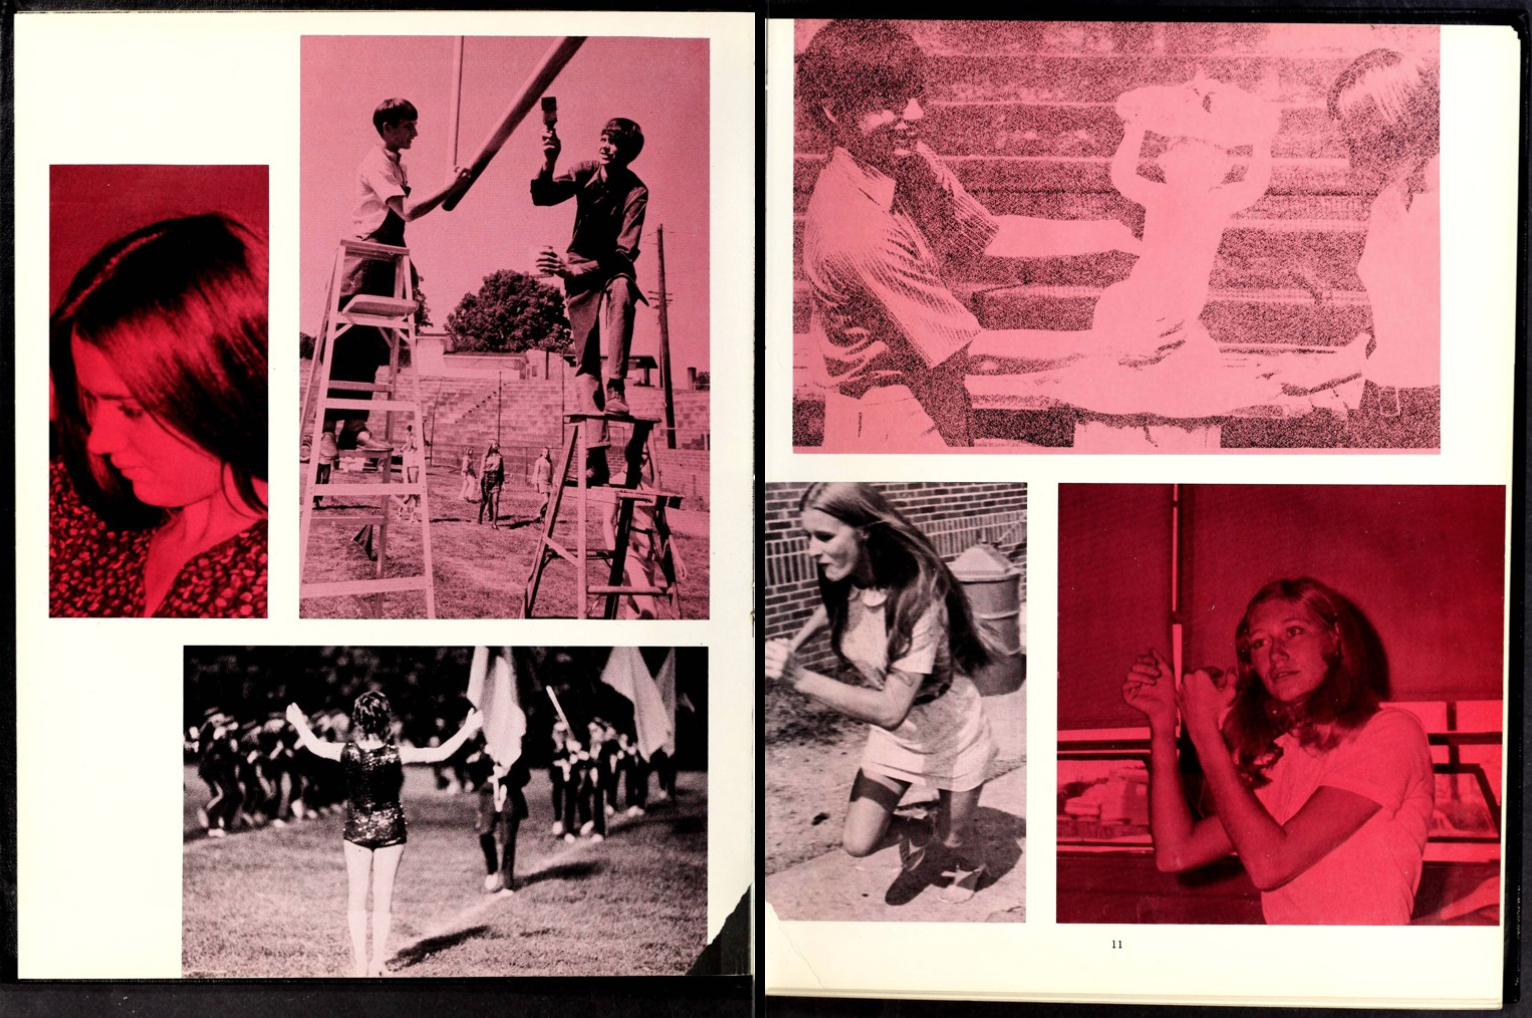 Two-page spread from the 1972 Granite Falls High School yearbook, The Granite Boulder. These two pages show candid photos taken during various events. All photos are in tones of pink.